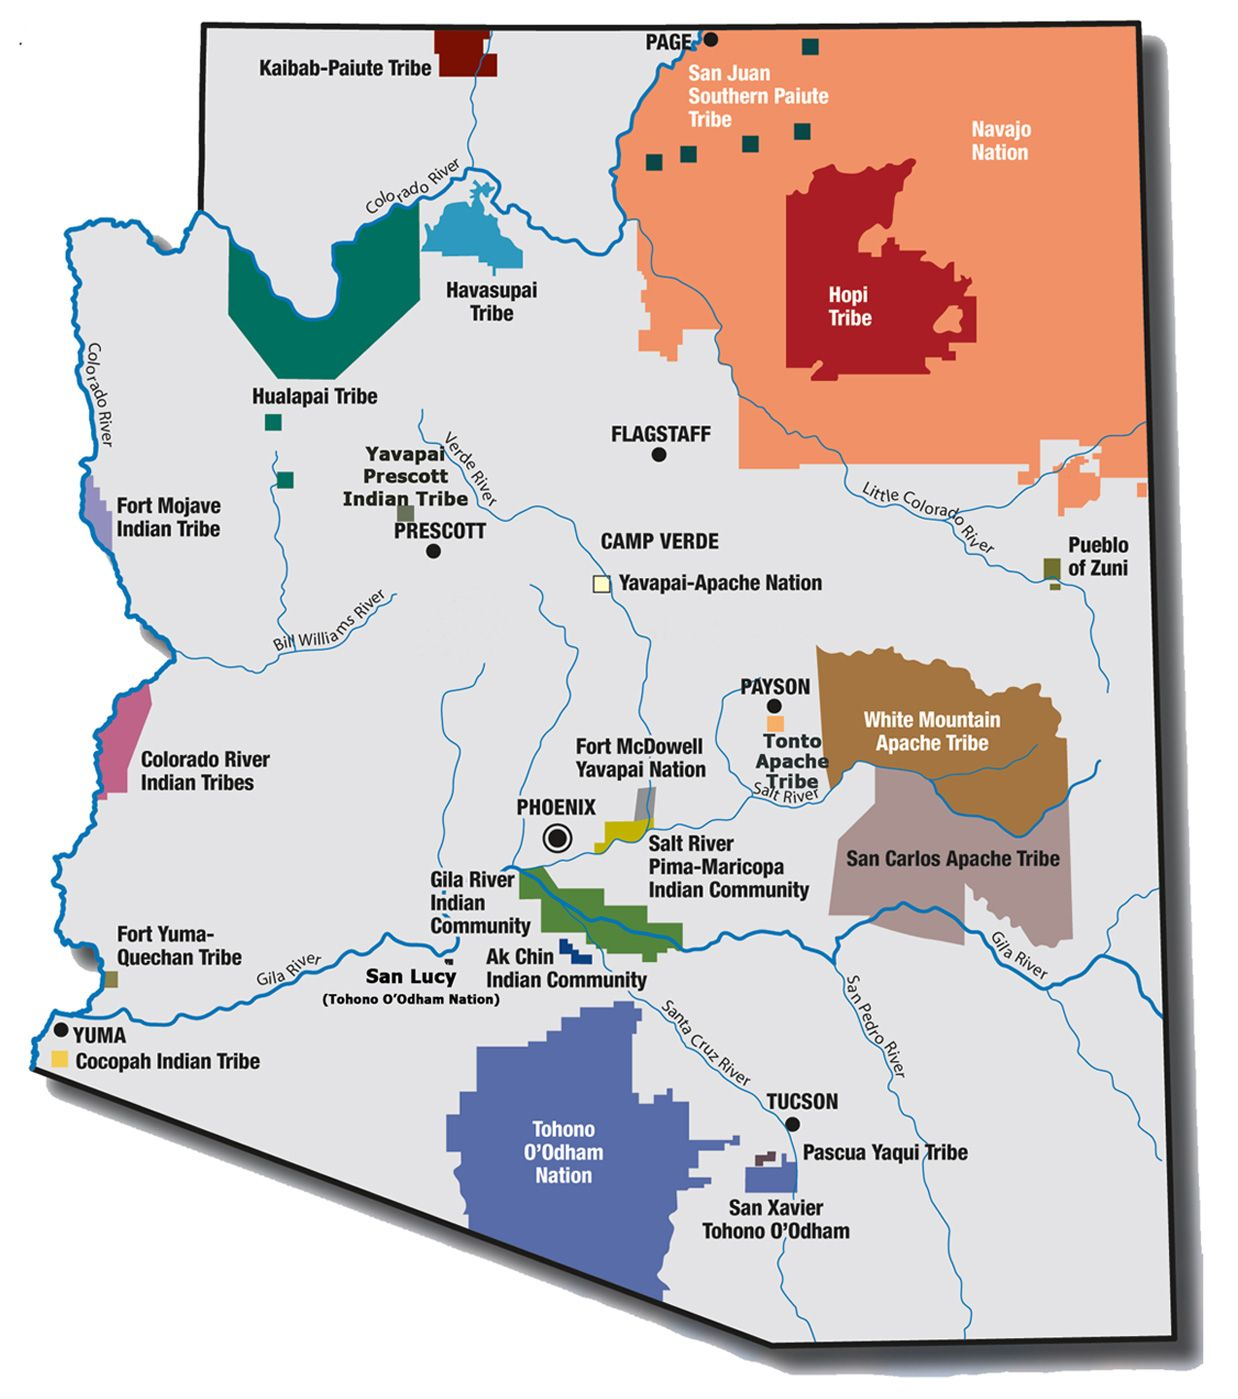 Majestic Indian Reservations In Arizona Map